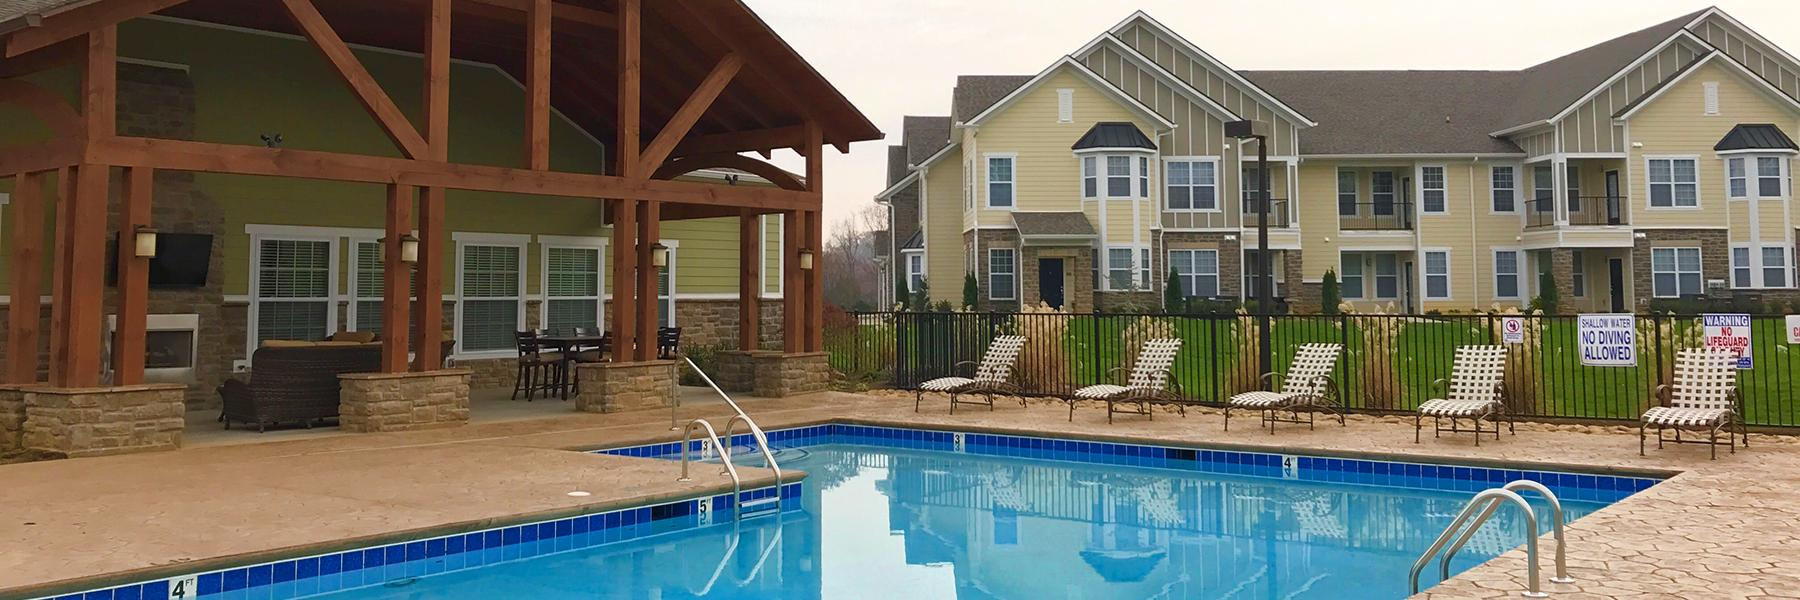 Apartments for rent in knoxville tn knoxville apartments for 4 bedroom apartments in knoxville tn